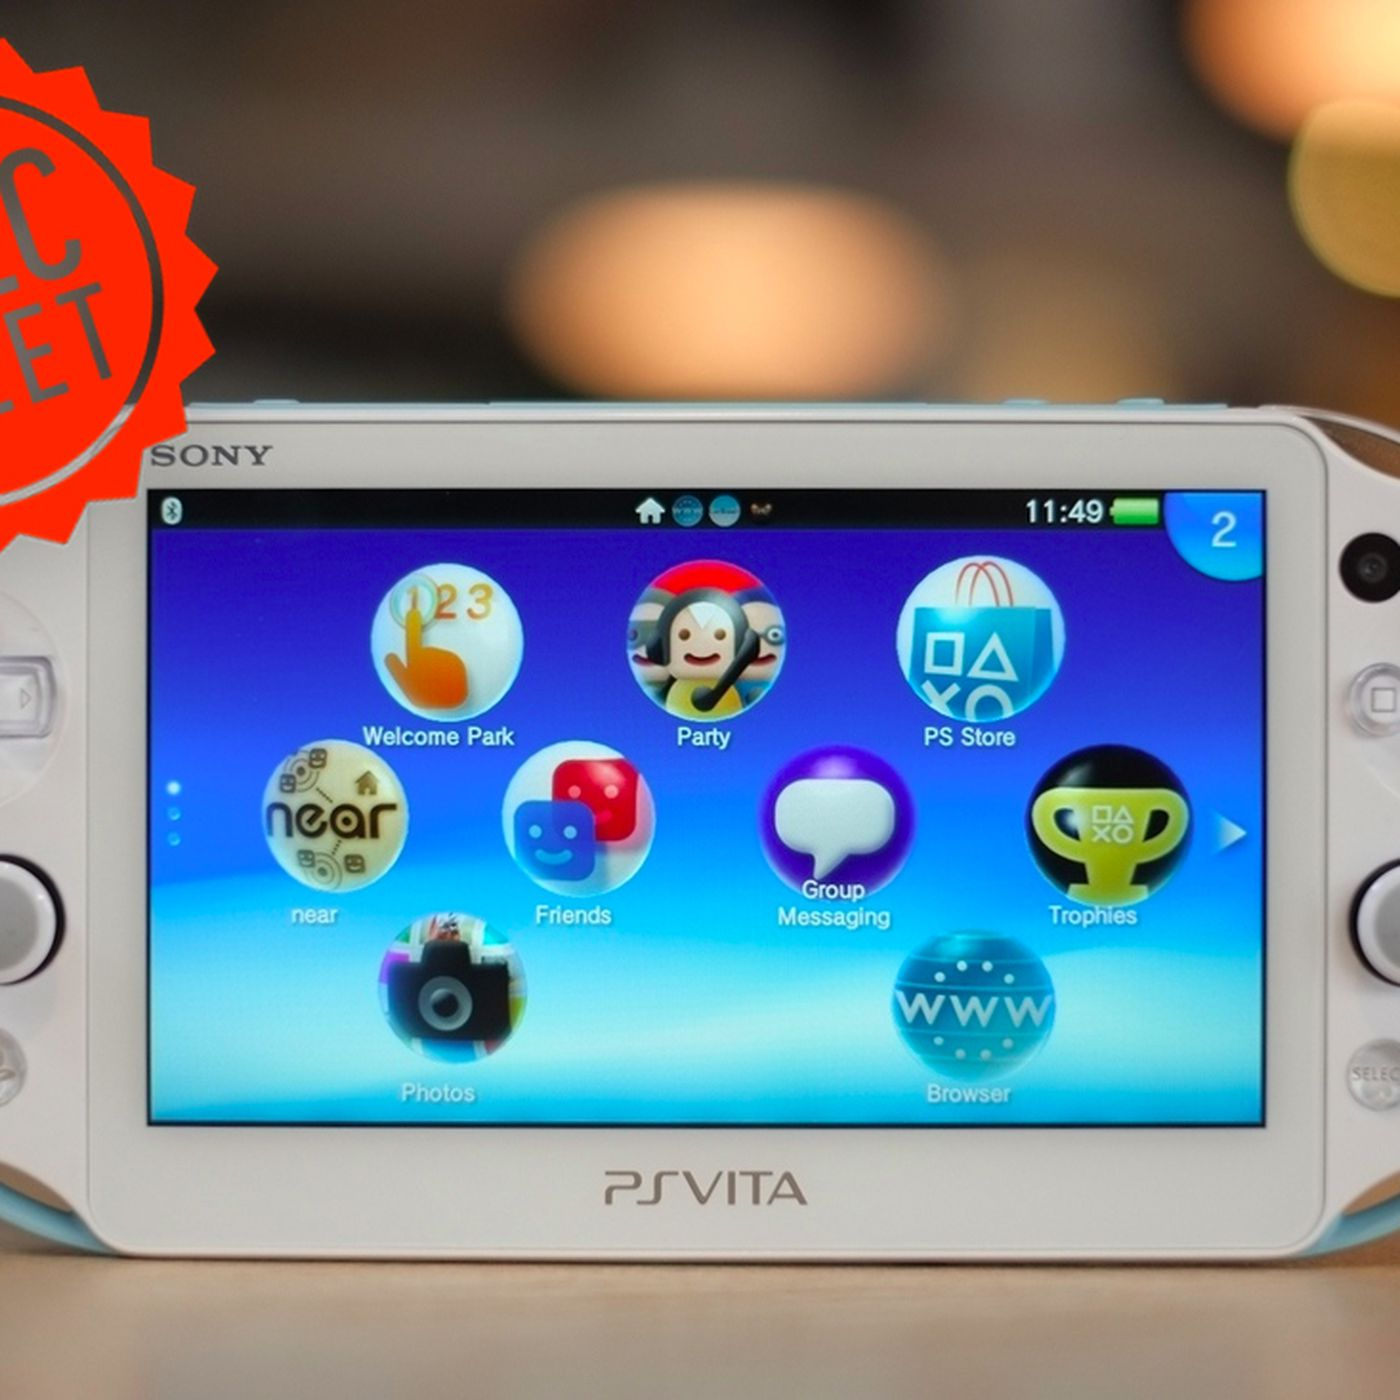 Spec Sheet Sony S Slimmer Playstation Vita Takes On The Top Portables The Verge